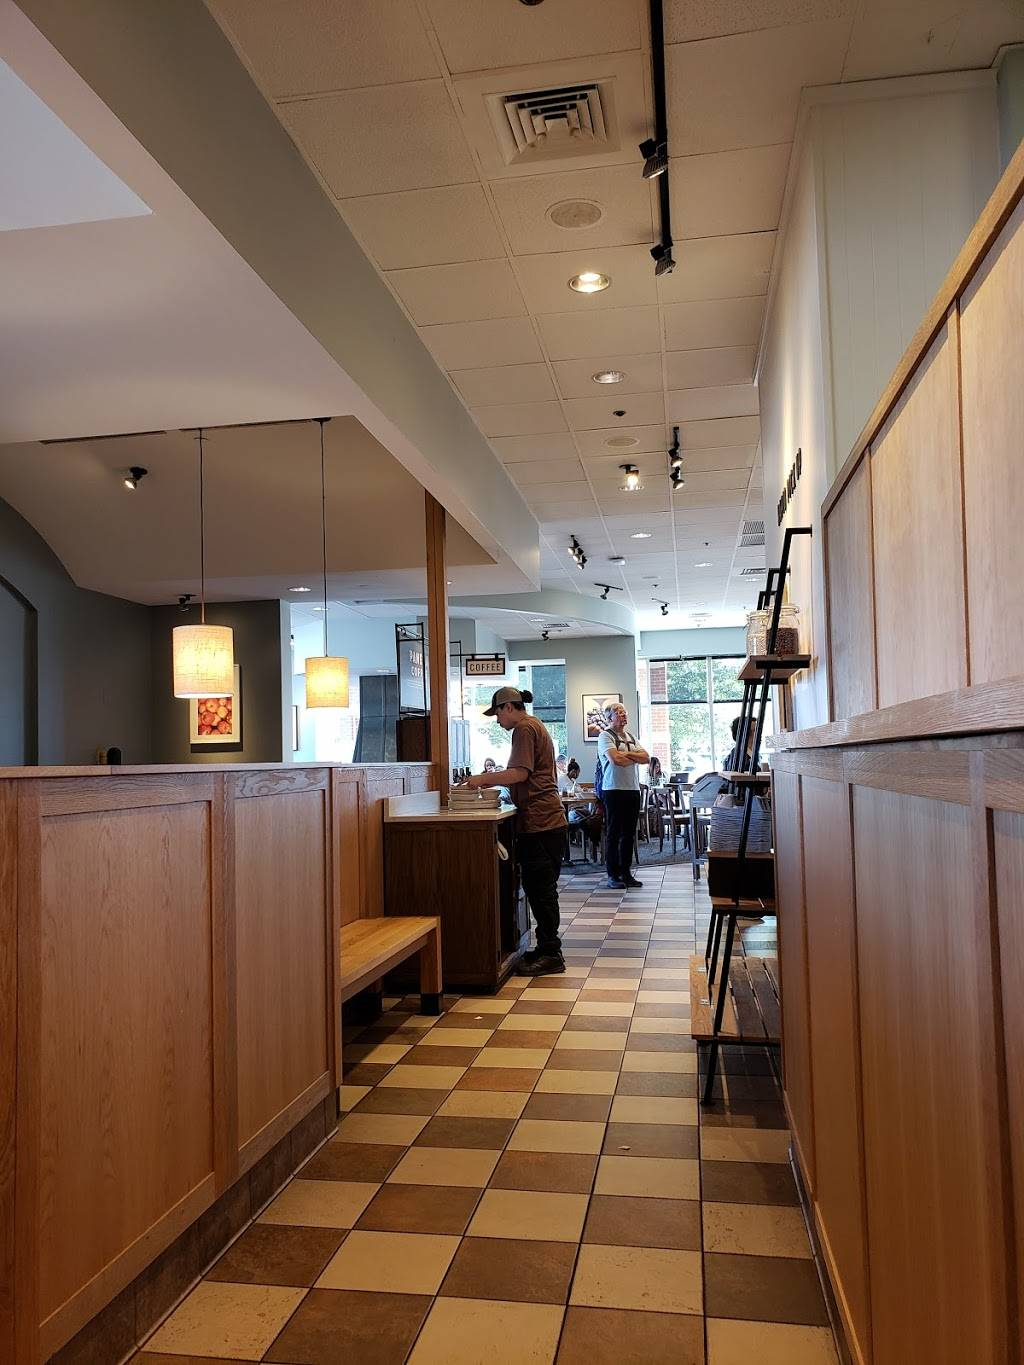 Panera Bread - cafe  | Photo 1 of 8 | Address: 12285 Tech Rd, Silver Spring, MD 20904, USA | Phone: (301) 680-7940